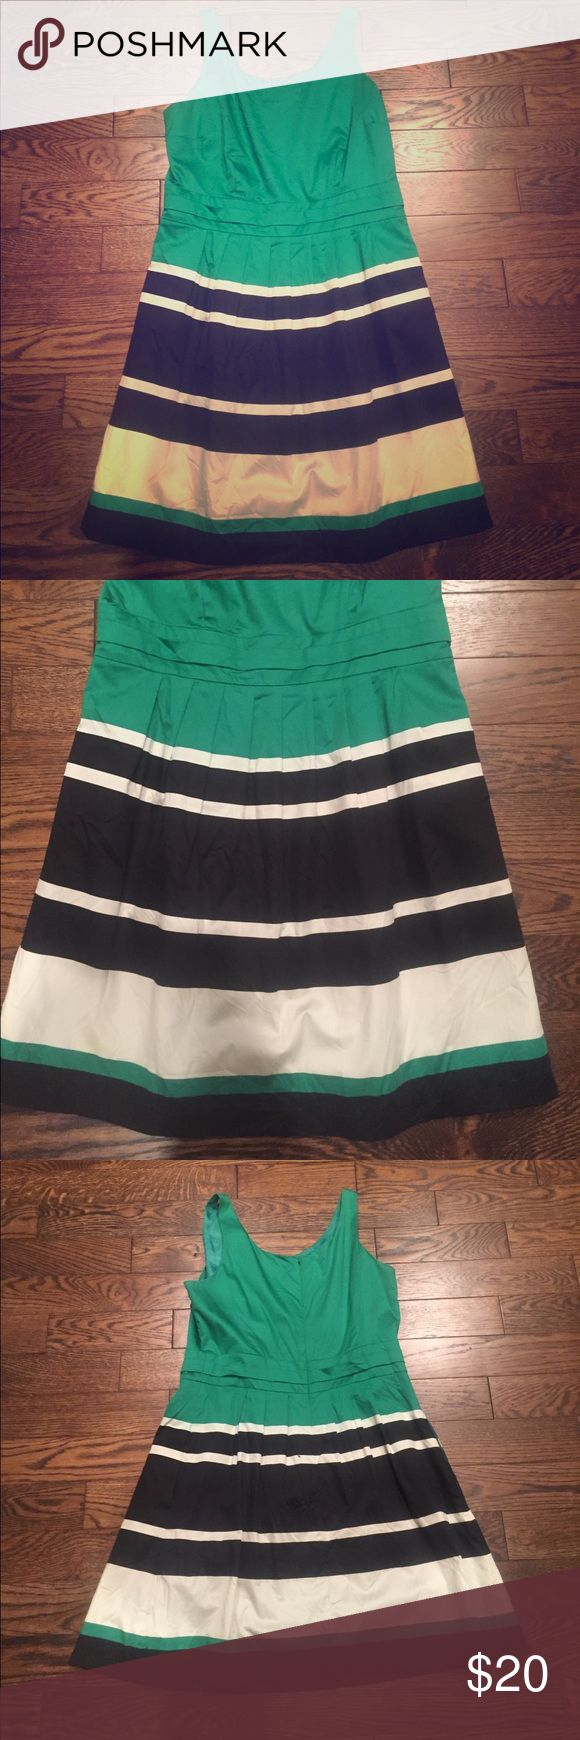 The Limited Dress Size 14 Super flattering and bright The Limited dress in size 14.  It has only been worn a few times and in great condition! It is green with black and white stripes.  It is a zipper back with a flowy skirt. It is 98% Cotton and 2% Spandex! I am cleaning out my closet before a move so feel free to make an offer! The Limited Dresses